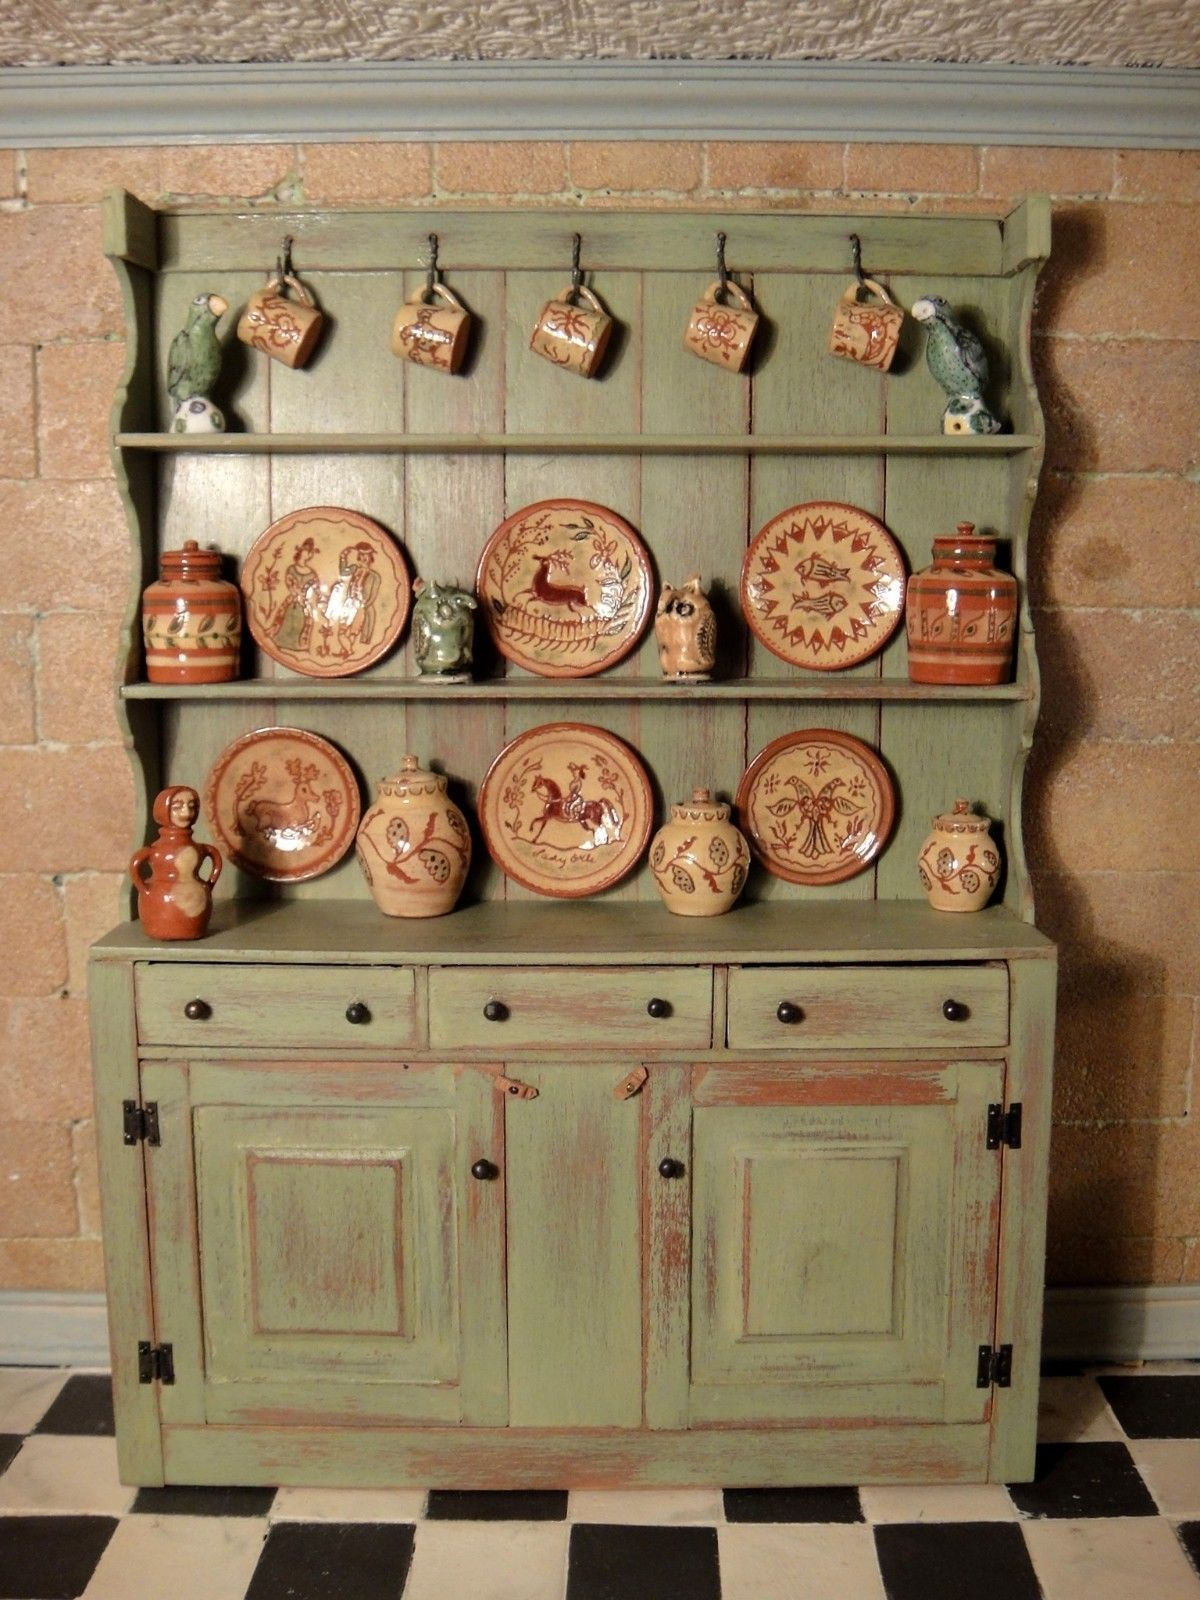 igma barbara vanar s queen anne cupboard filled with jane graber